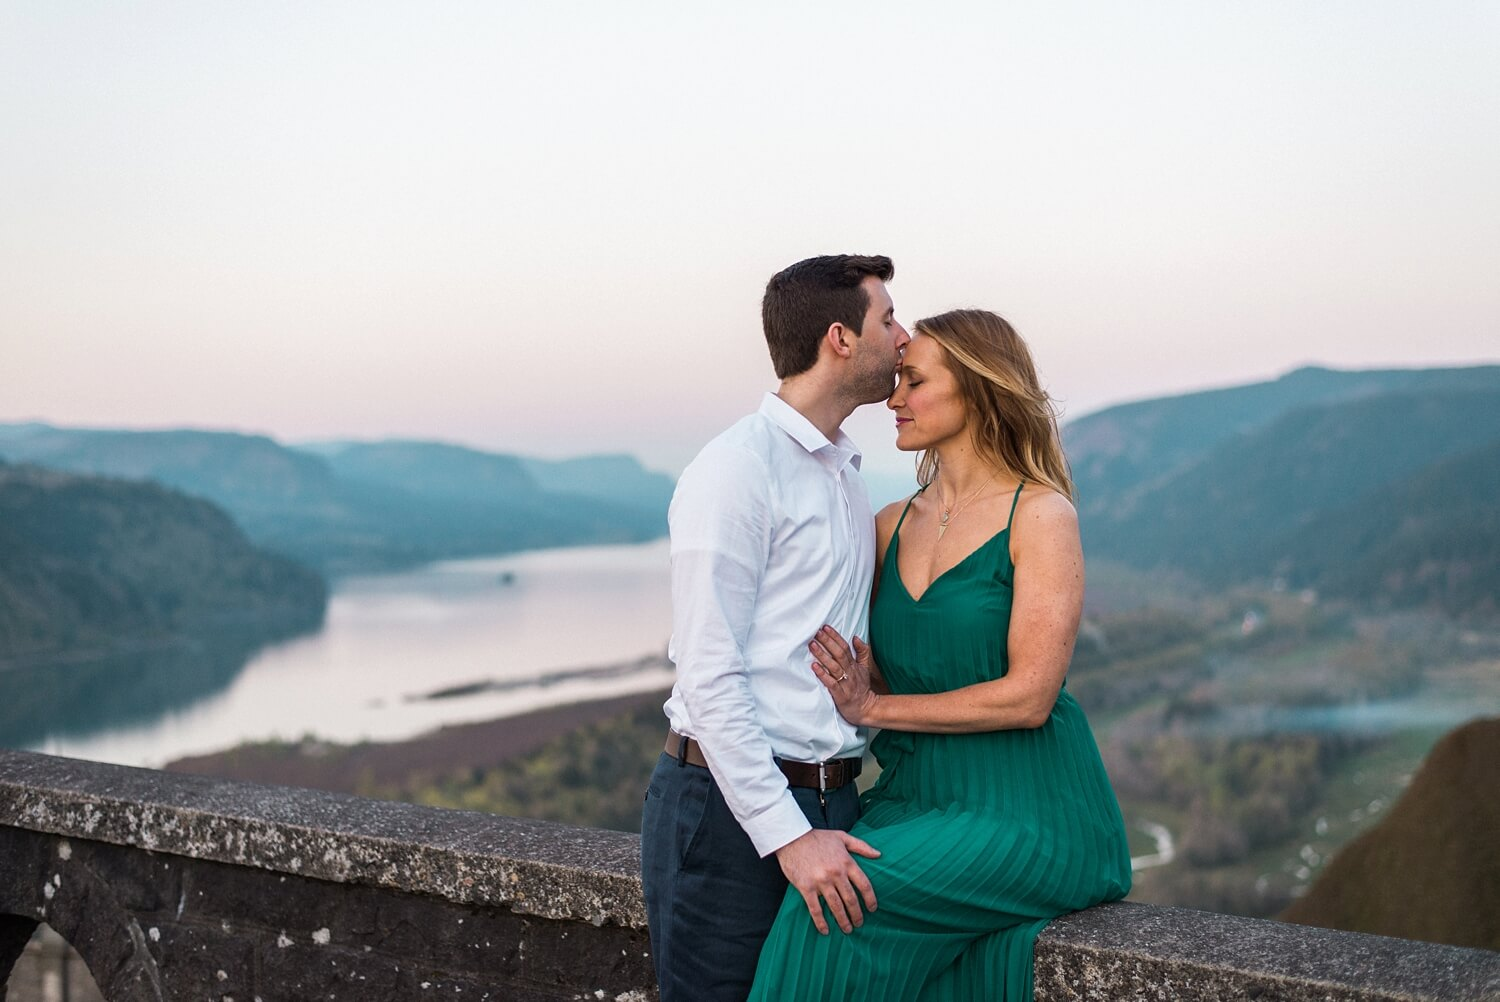 portland-engagement-columbia-river-gorge-oneonta-latourell-waterfall-shelley-marie-photo-289_cr.jpg